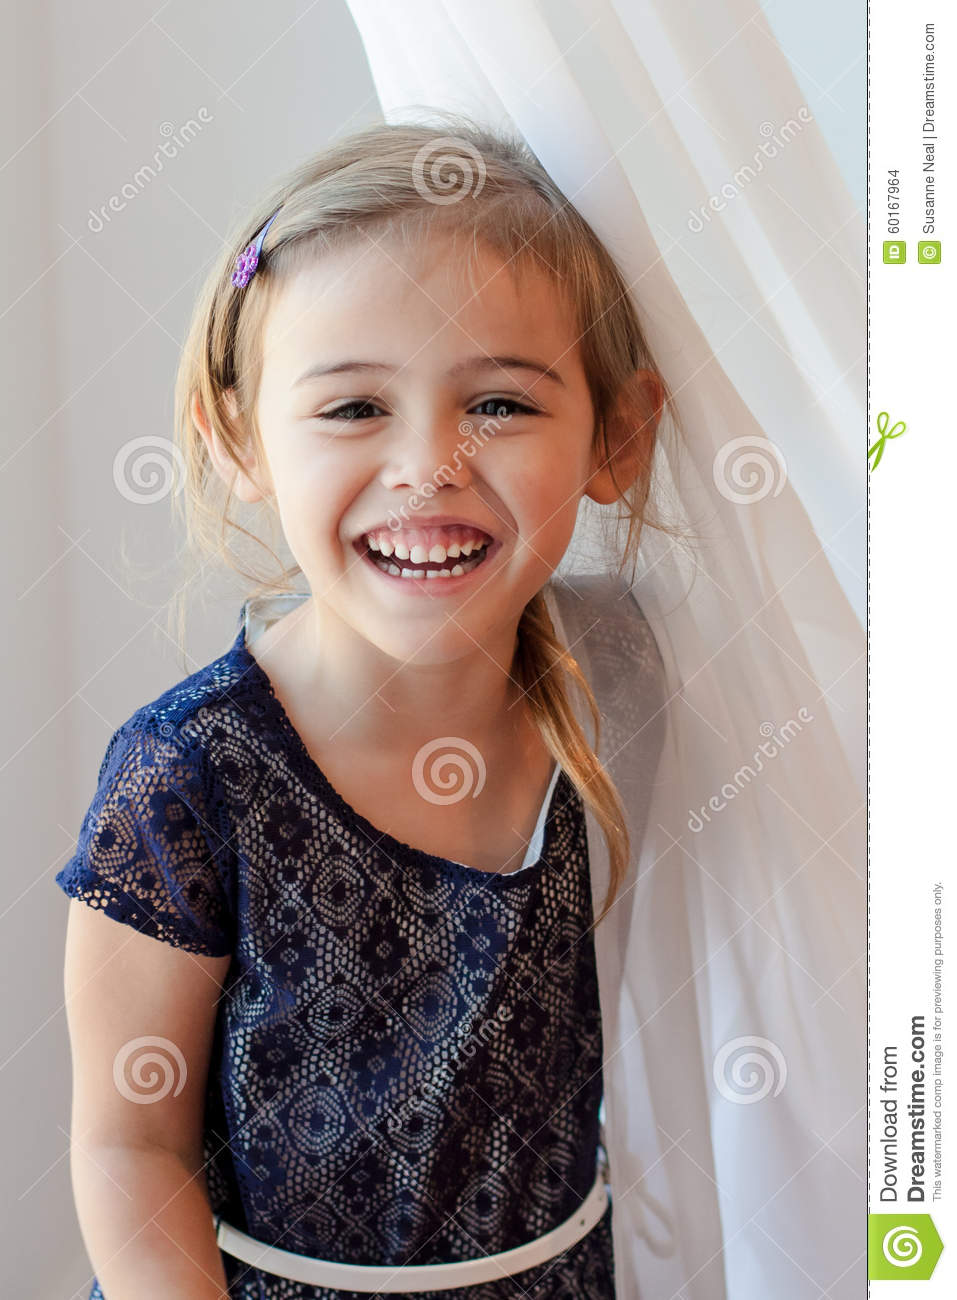 Adorable Four Year Boy With Big Blue Eyes Stock Image: Happy Four Year Old Girl By Sheer White Curtain Stock